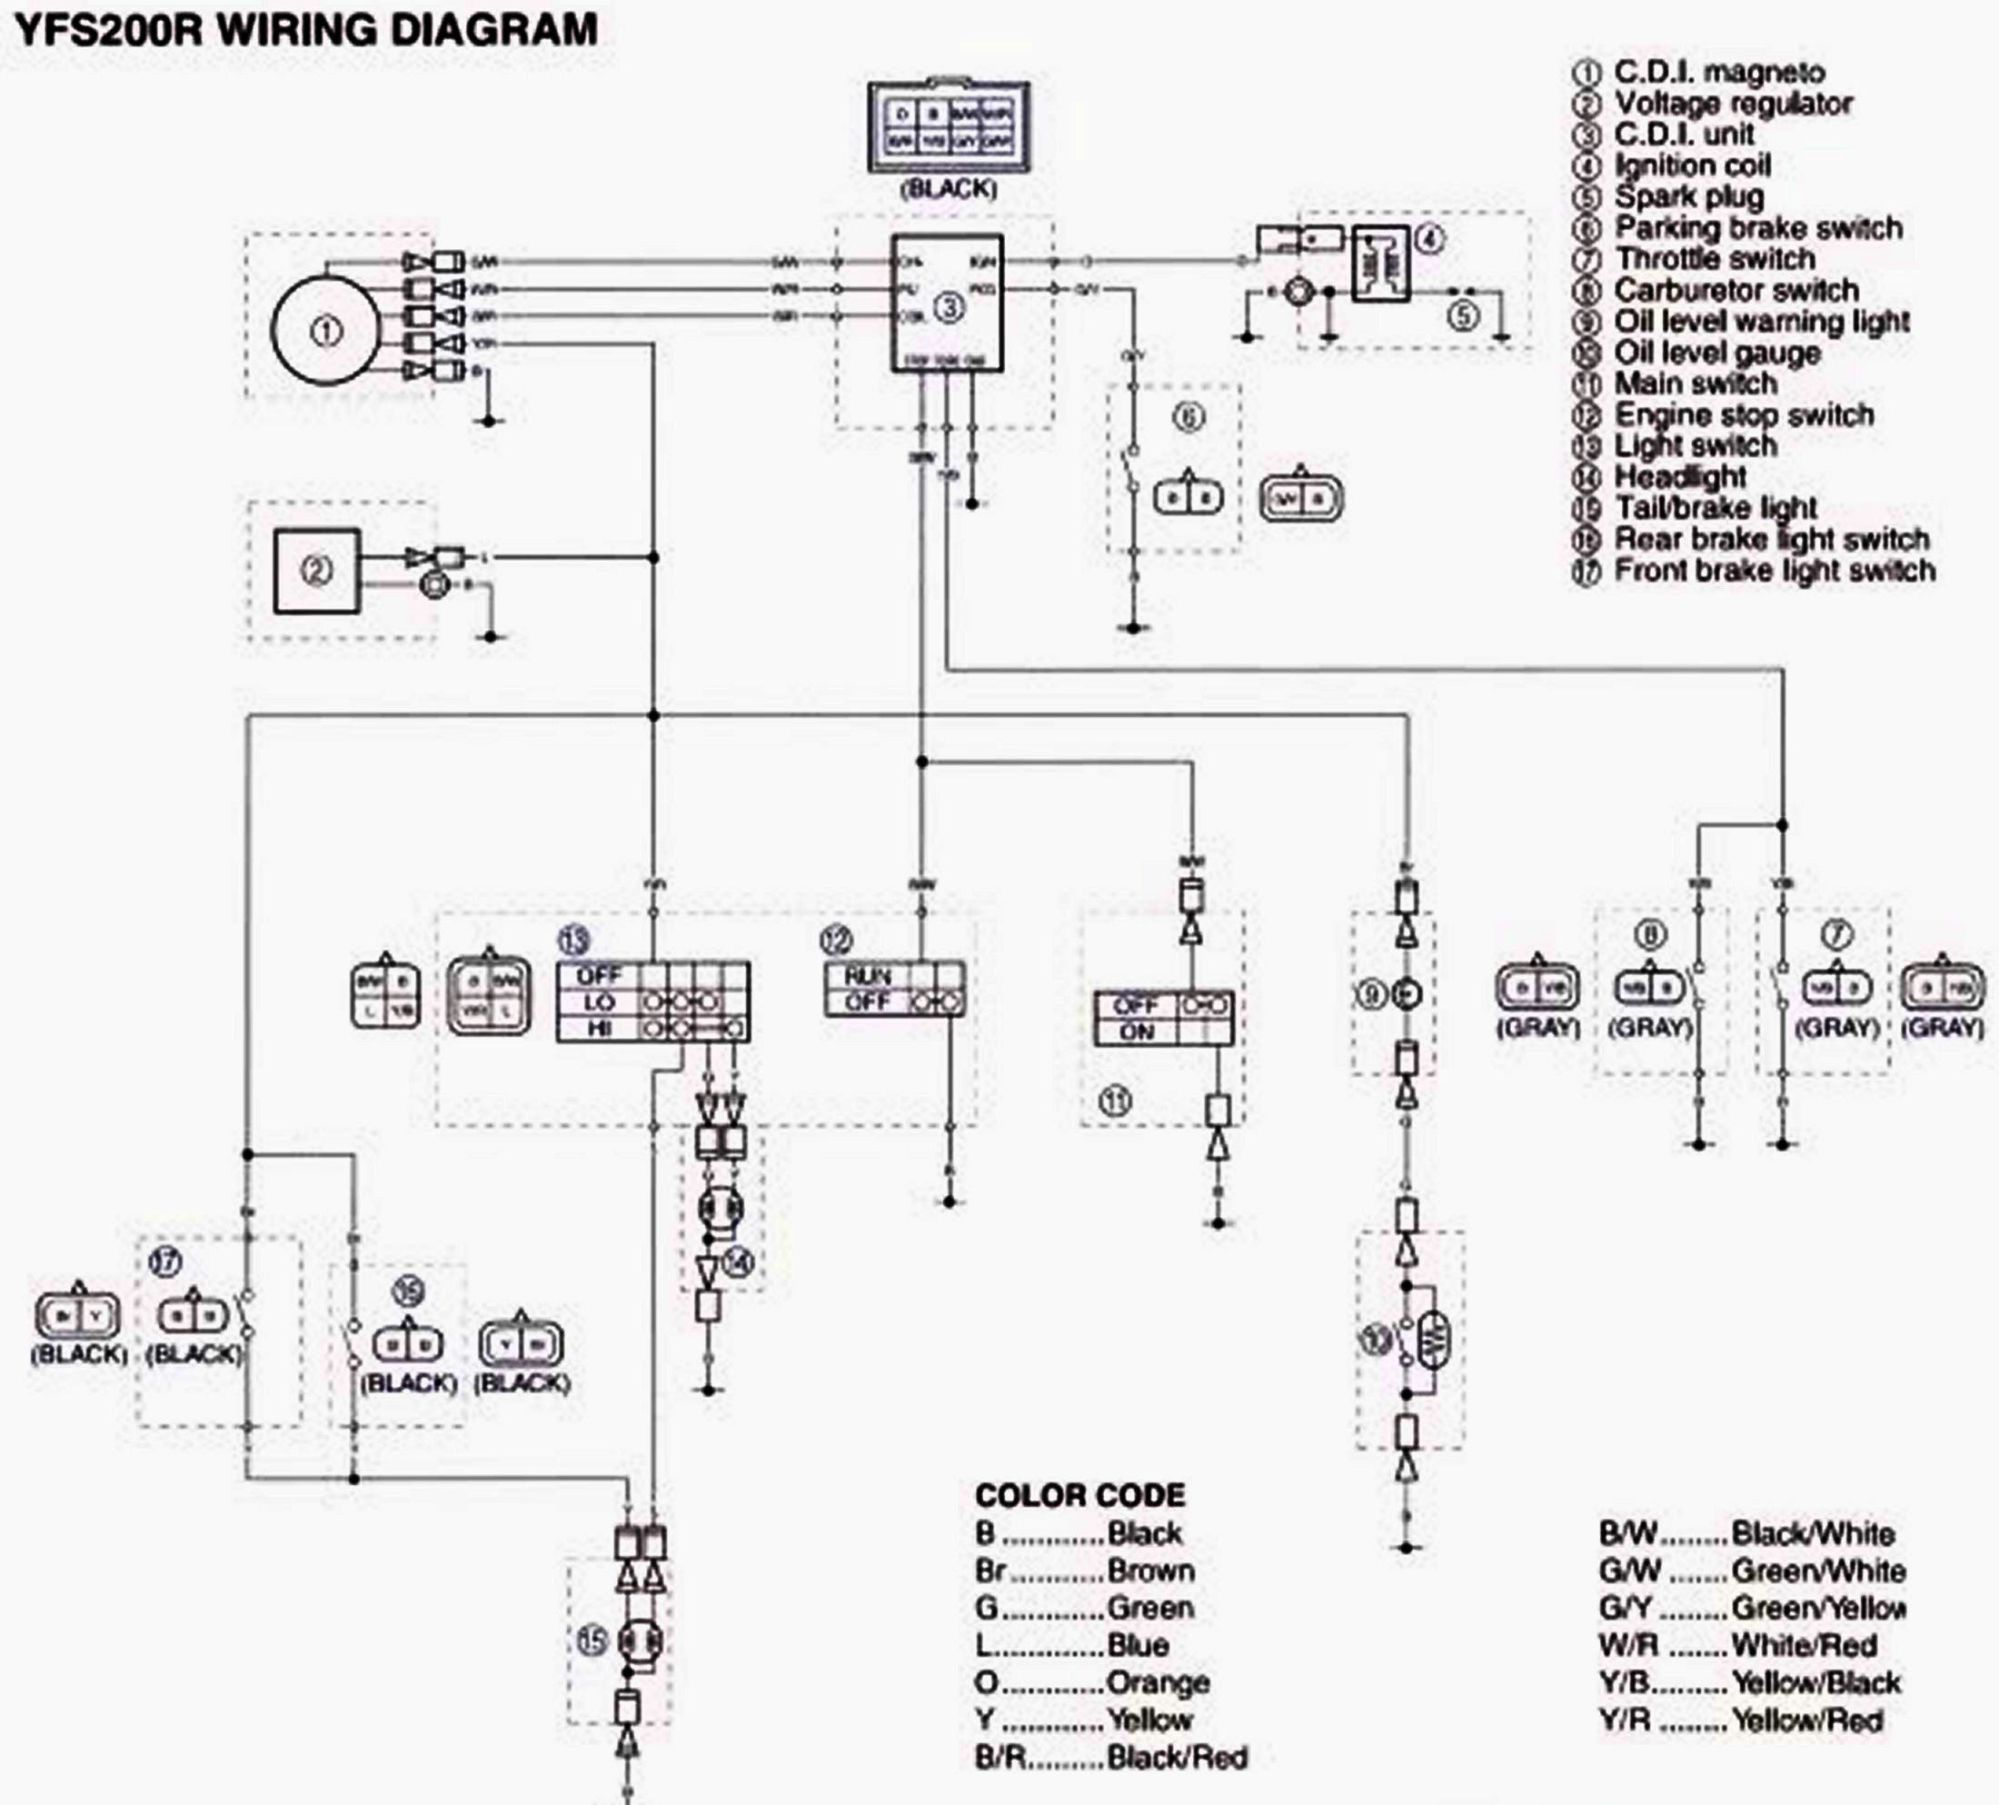 hight resolution of 2002 yamaha kodiak wiring diagram